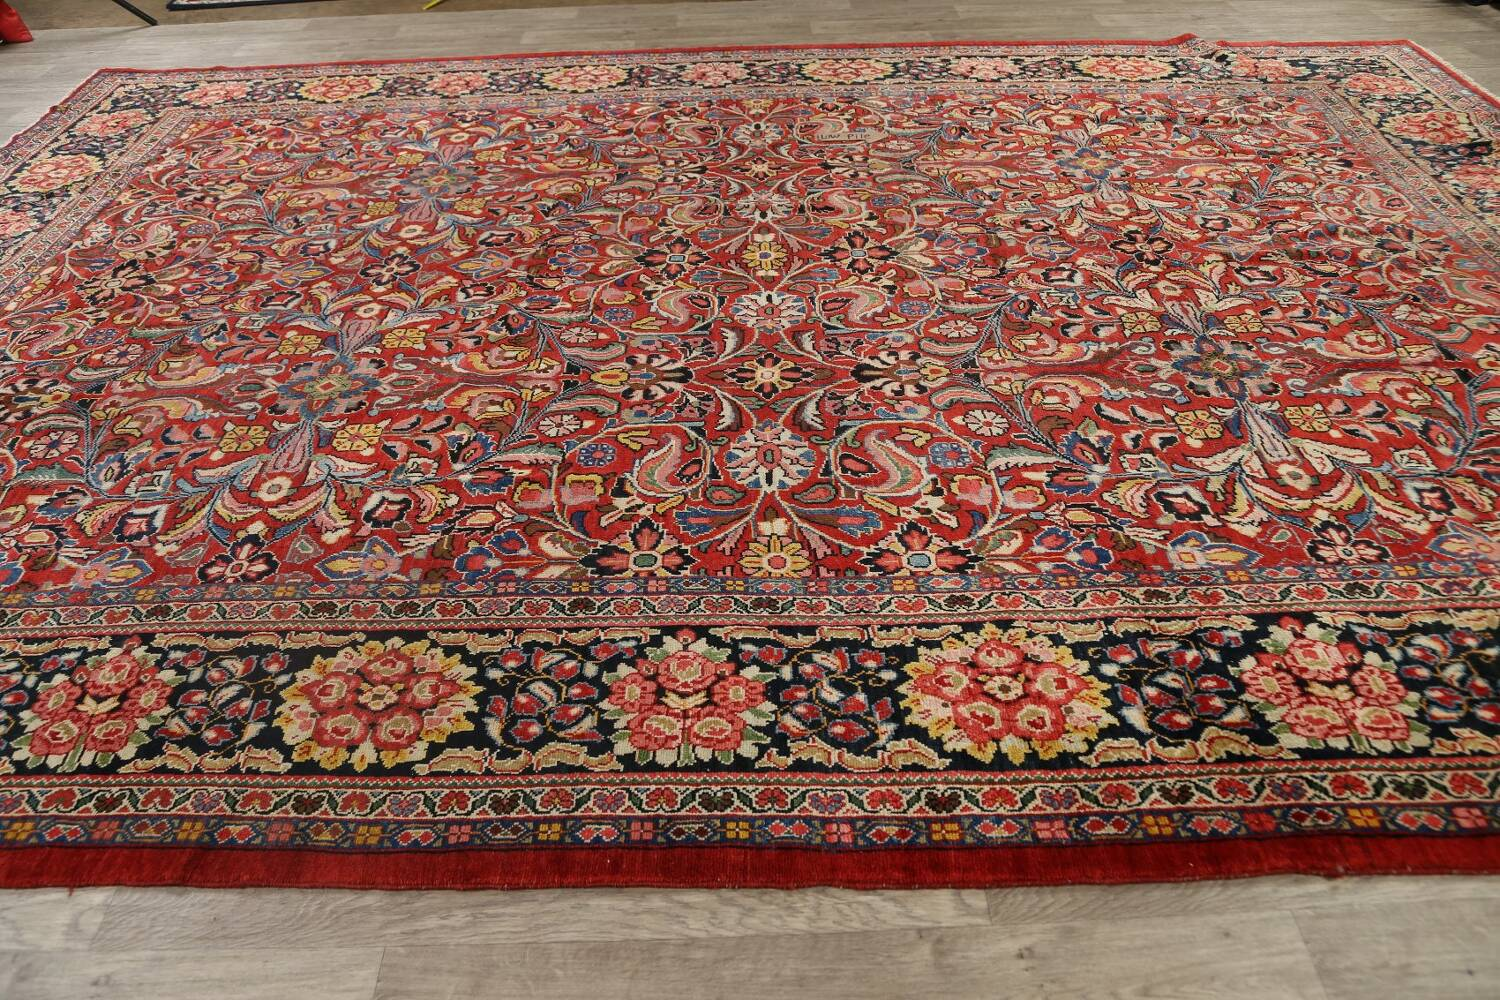 Antique Vegetable Dye Sultanabad Persian Area Rug 10x14 image 14